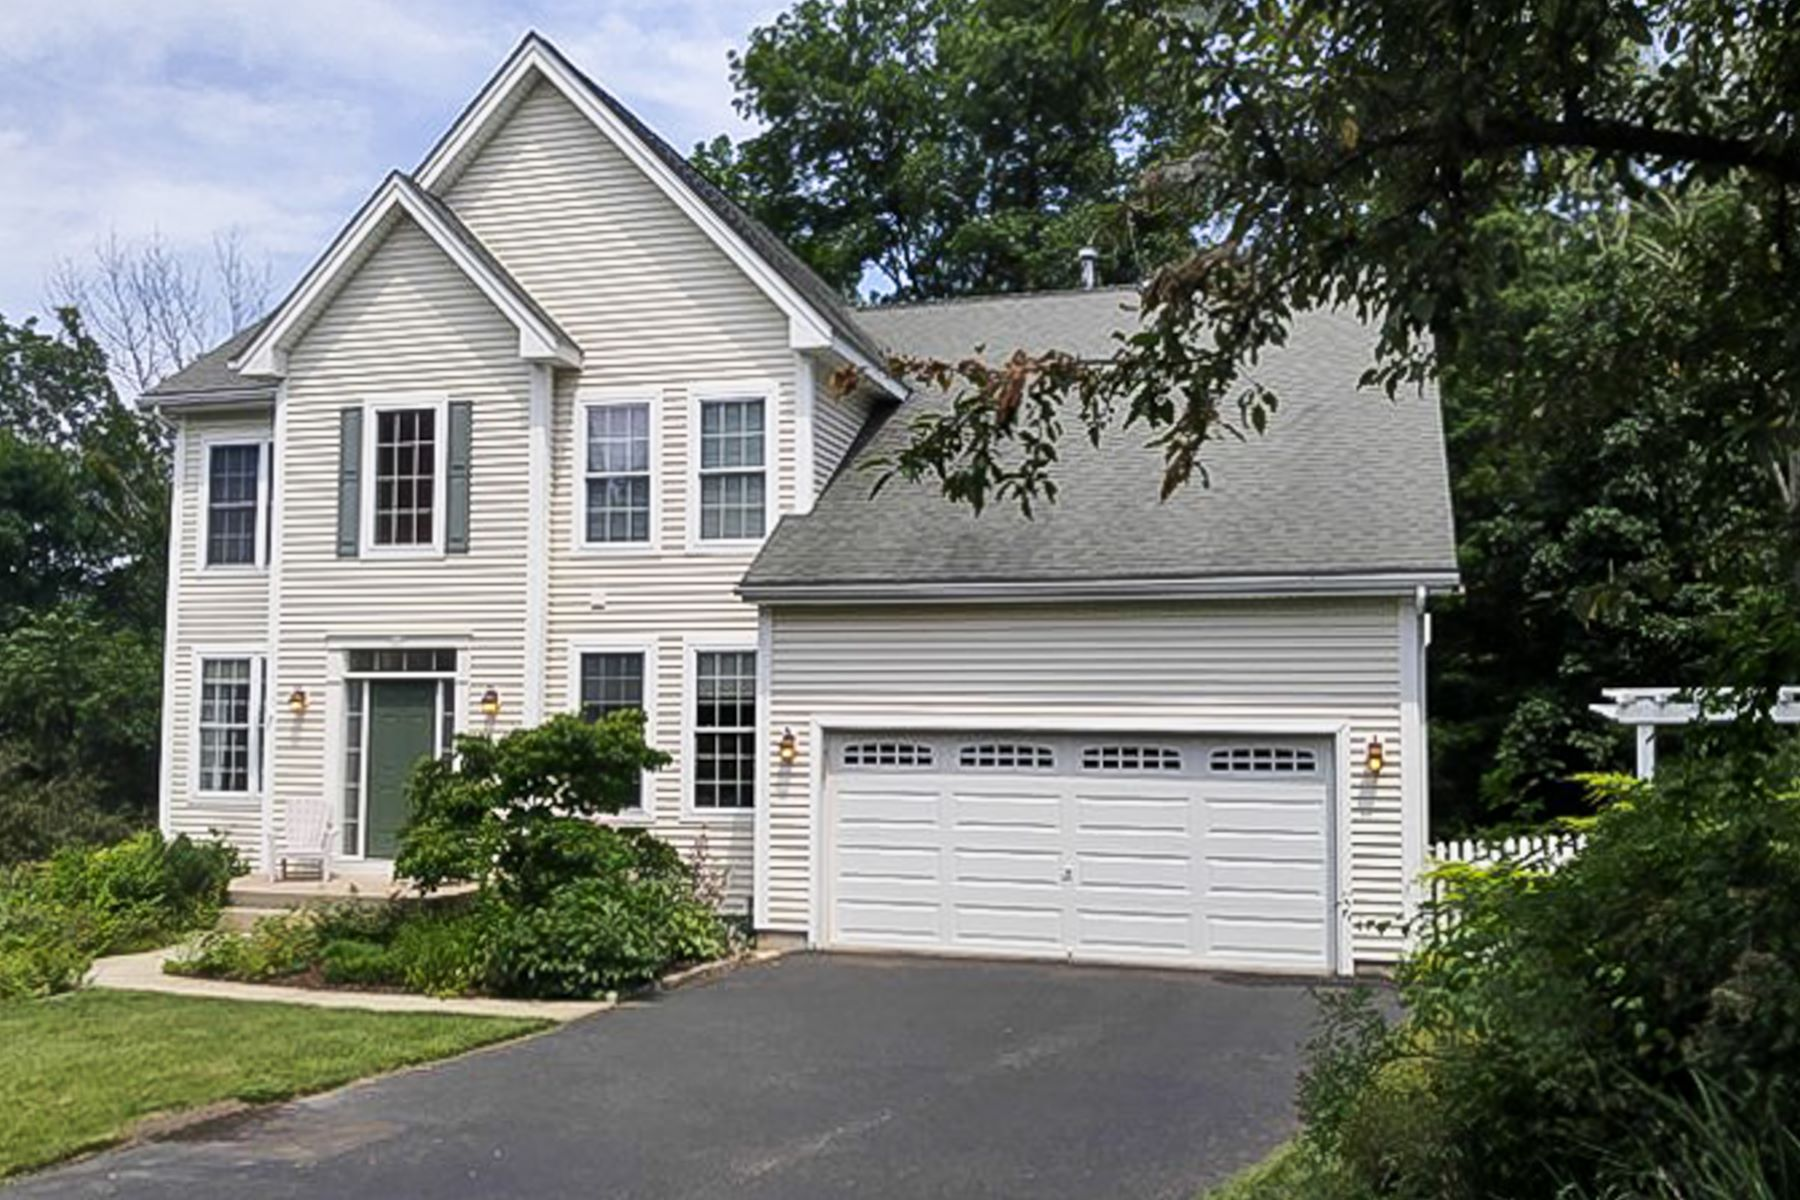 Single Family Home for Sale at Award Winning Complex 11 Independence Circle 11 Southbury, Connecticut 06488 United States